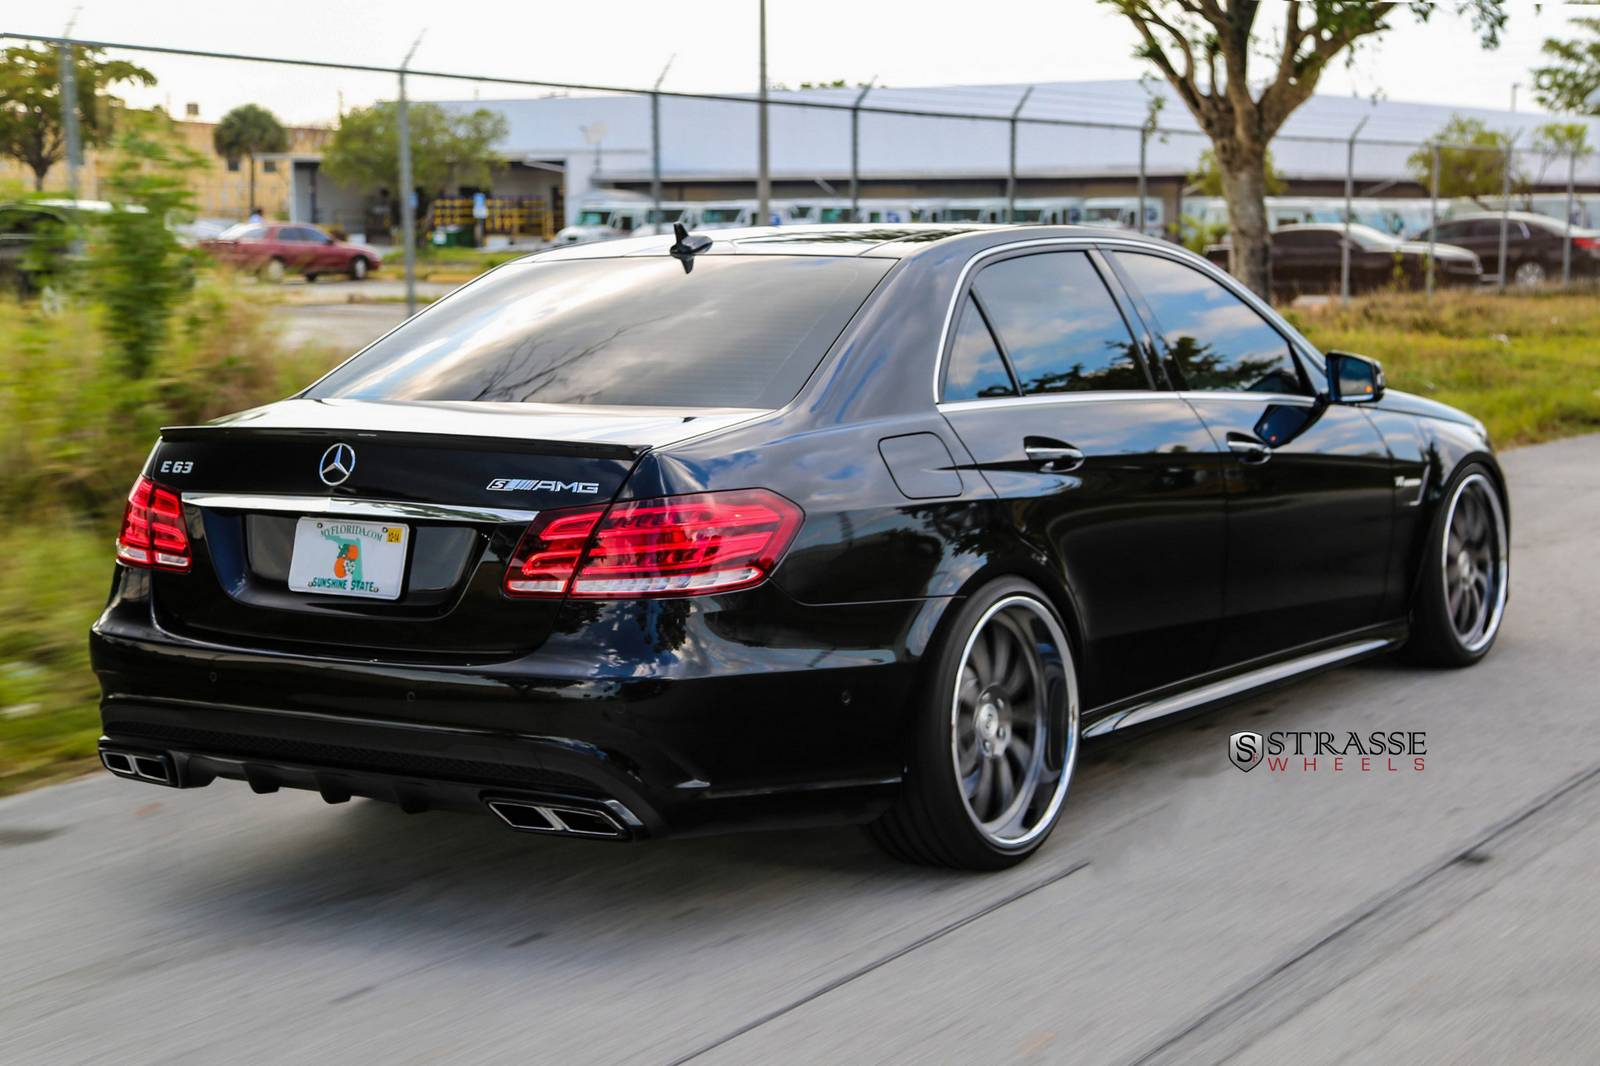 2014 mercedes benz e63 amg s by titanio automotive gtspirit for Mercedes benz e63s amg